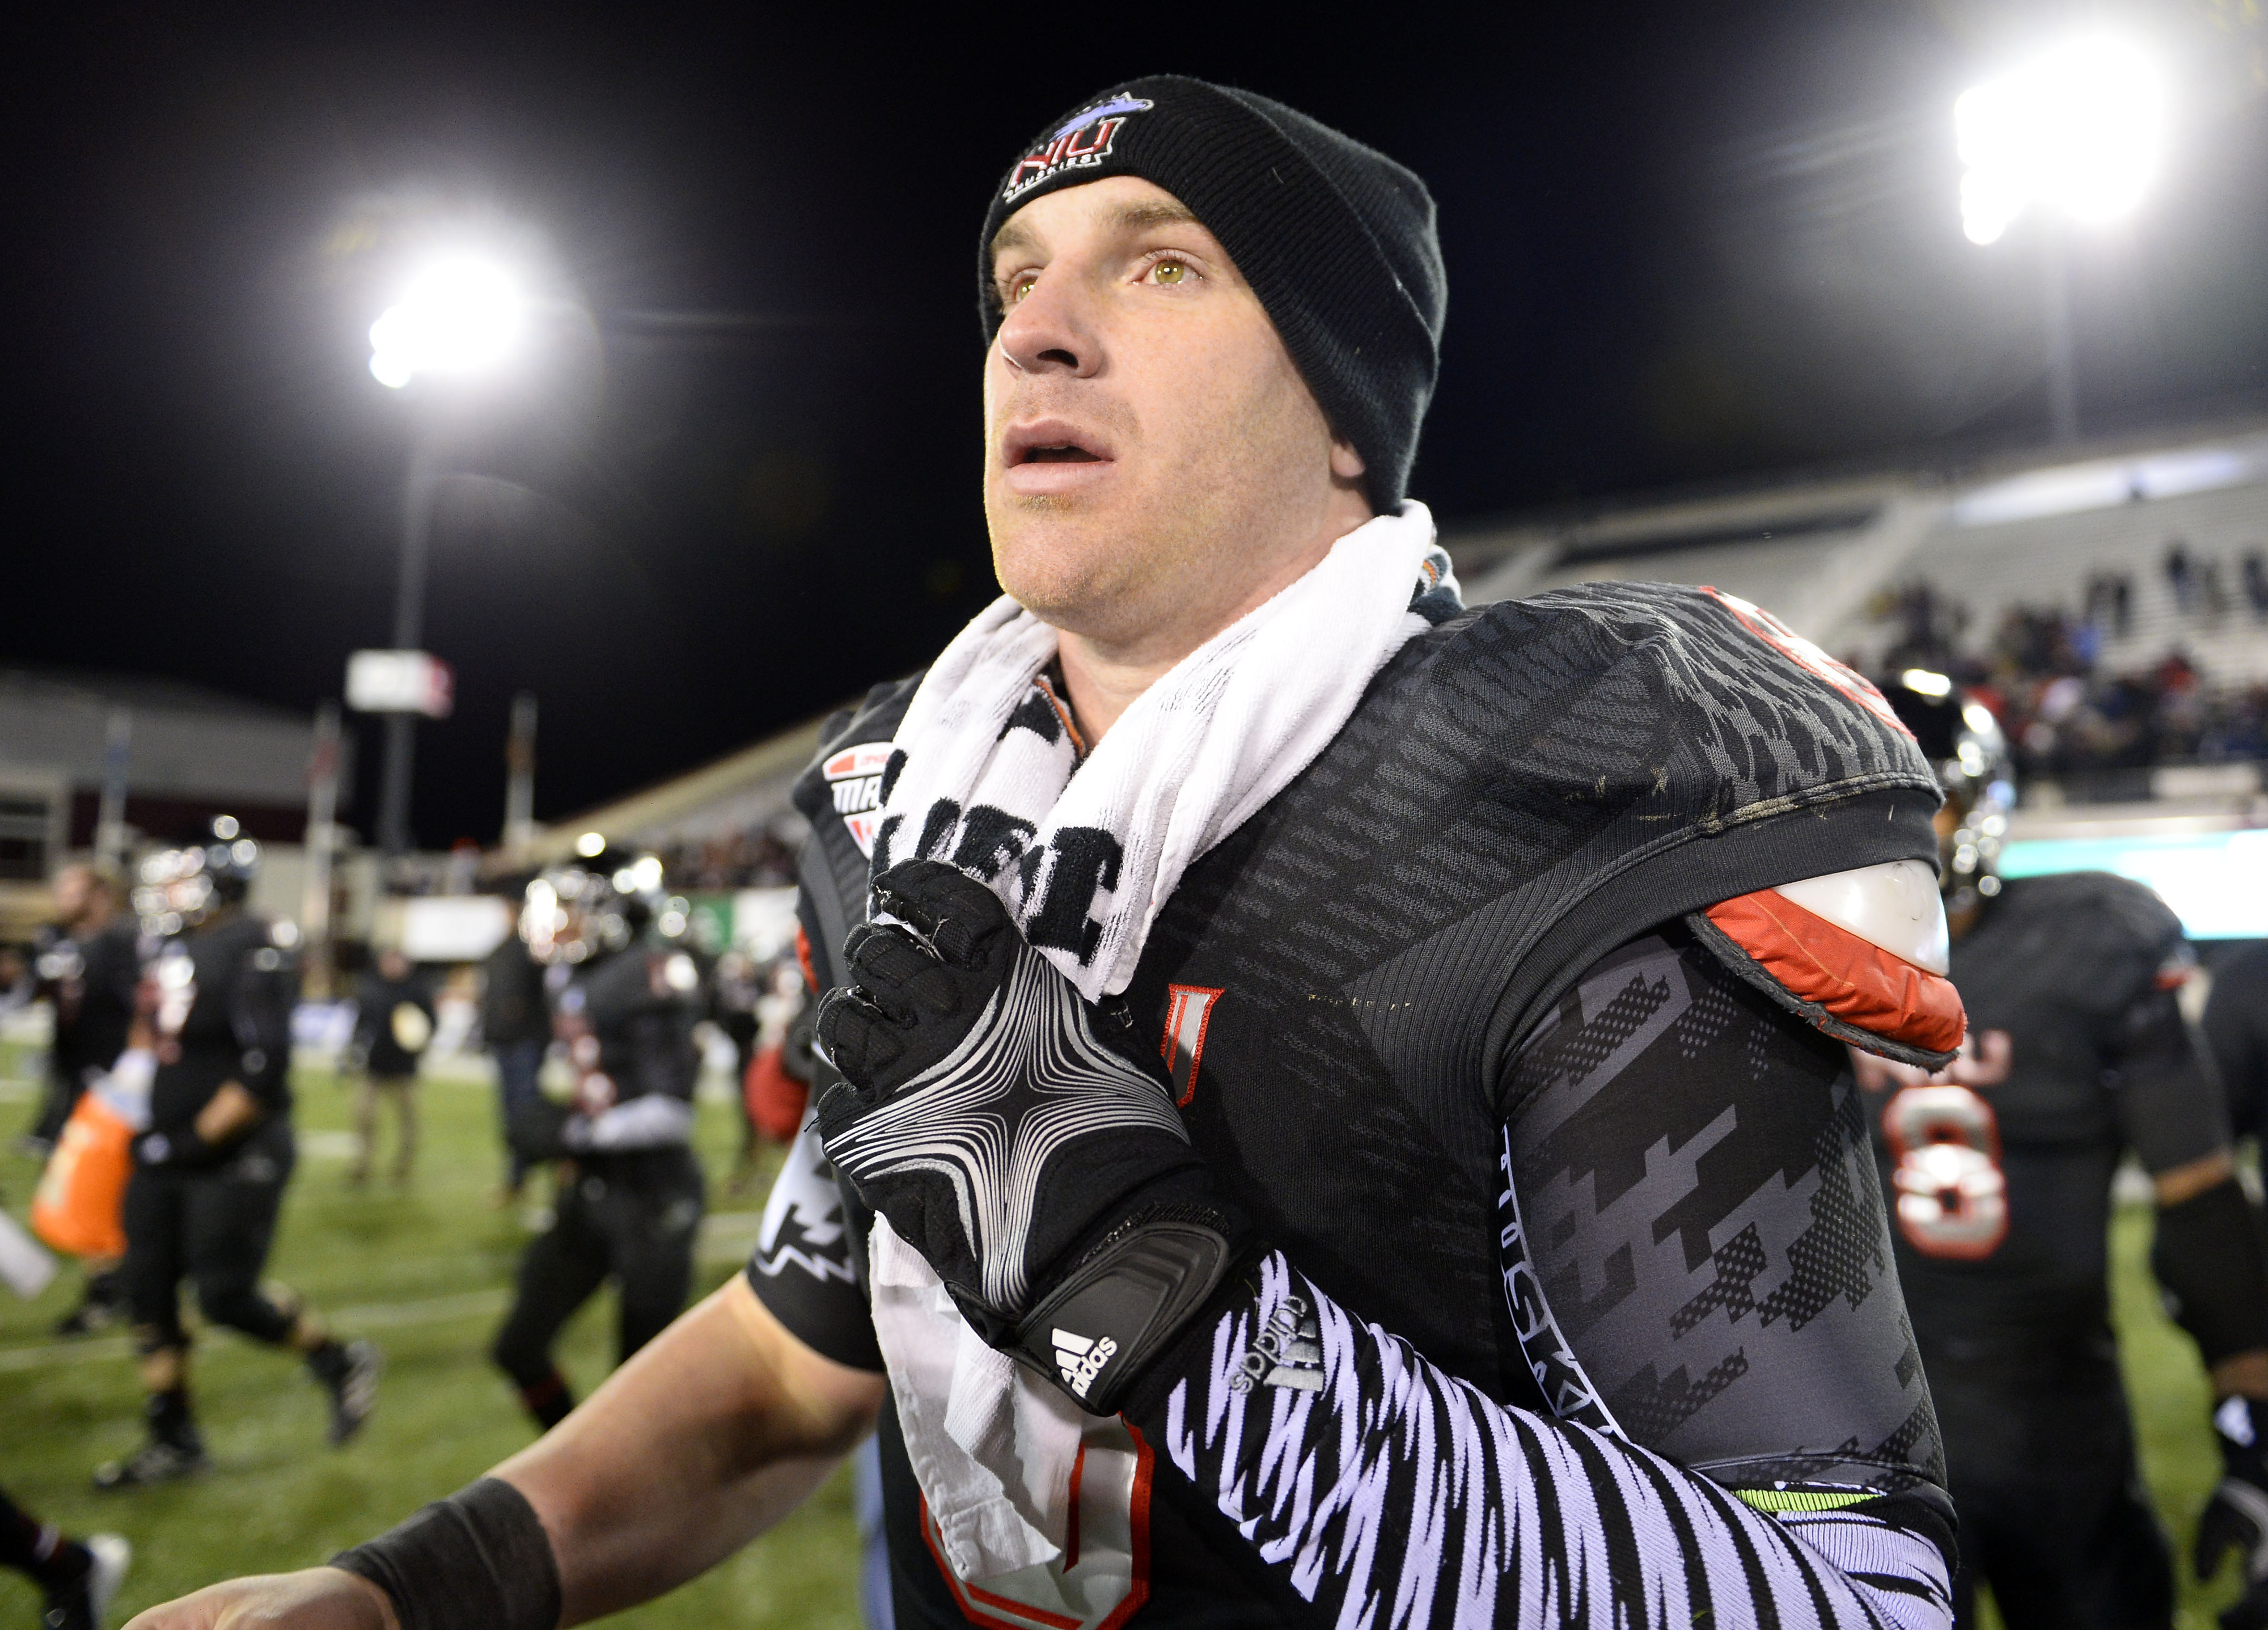 Jordan Lynch has led his team to a fourth-straight MAC West championship and the No. 1 ranking in the Mid-Major Top 10 poll.